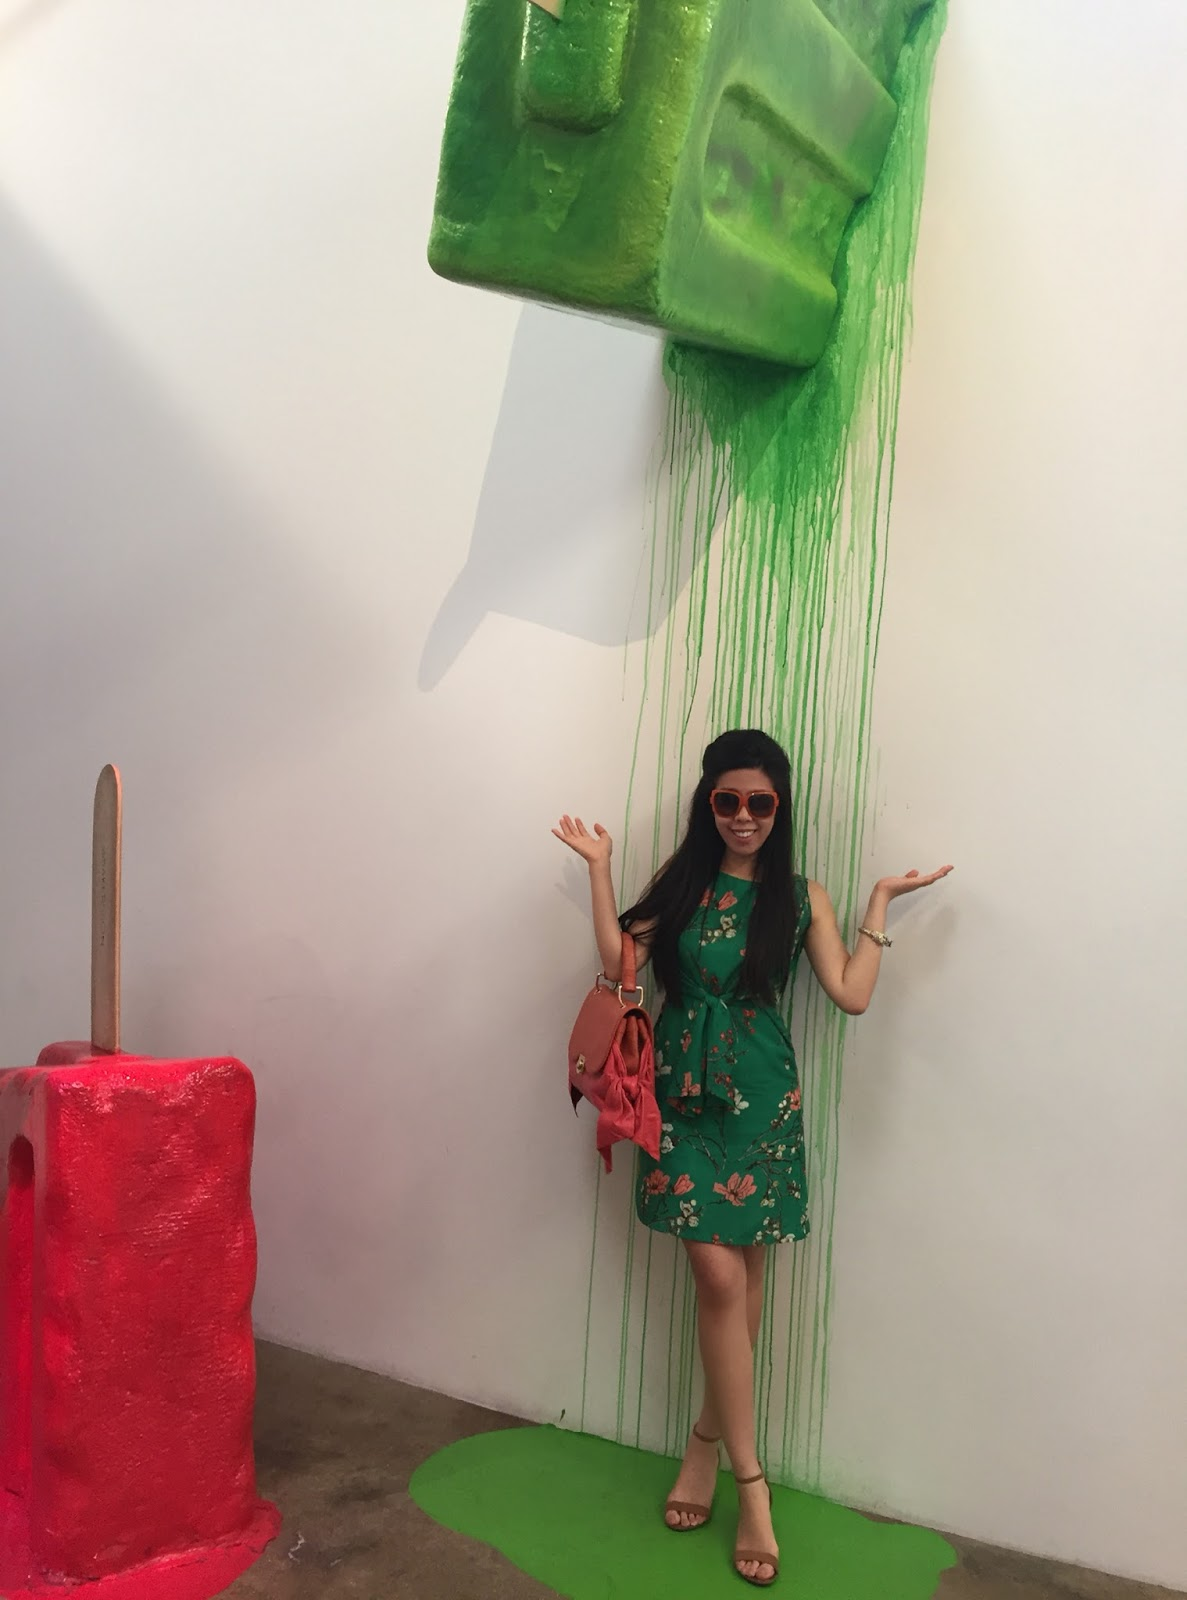 Rainbows at the Museum of Ice Cream in Los Angeles_Adrienne Nguyen_Invictus_Melting Ice Cream